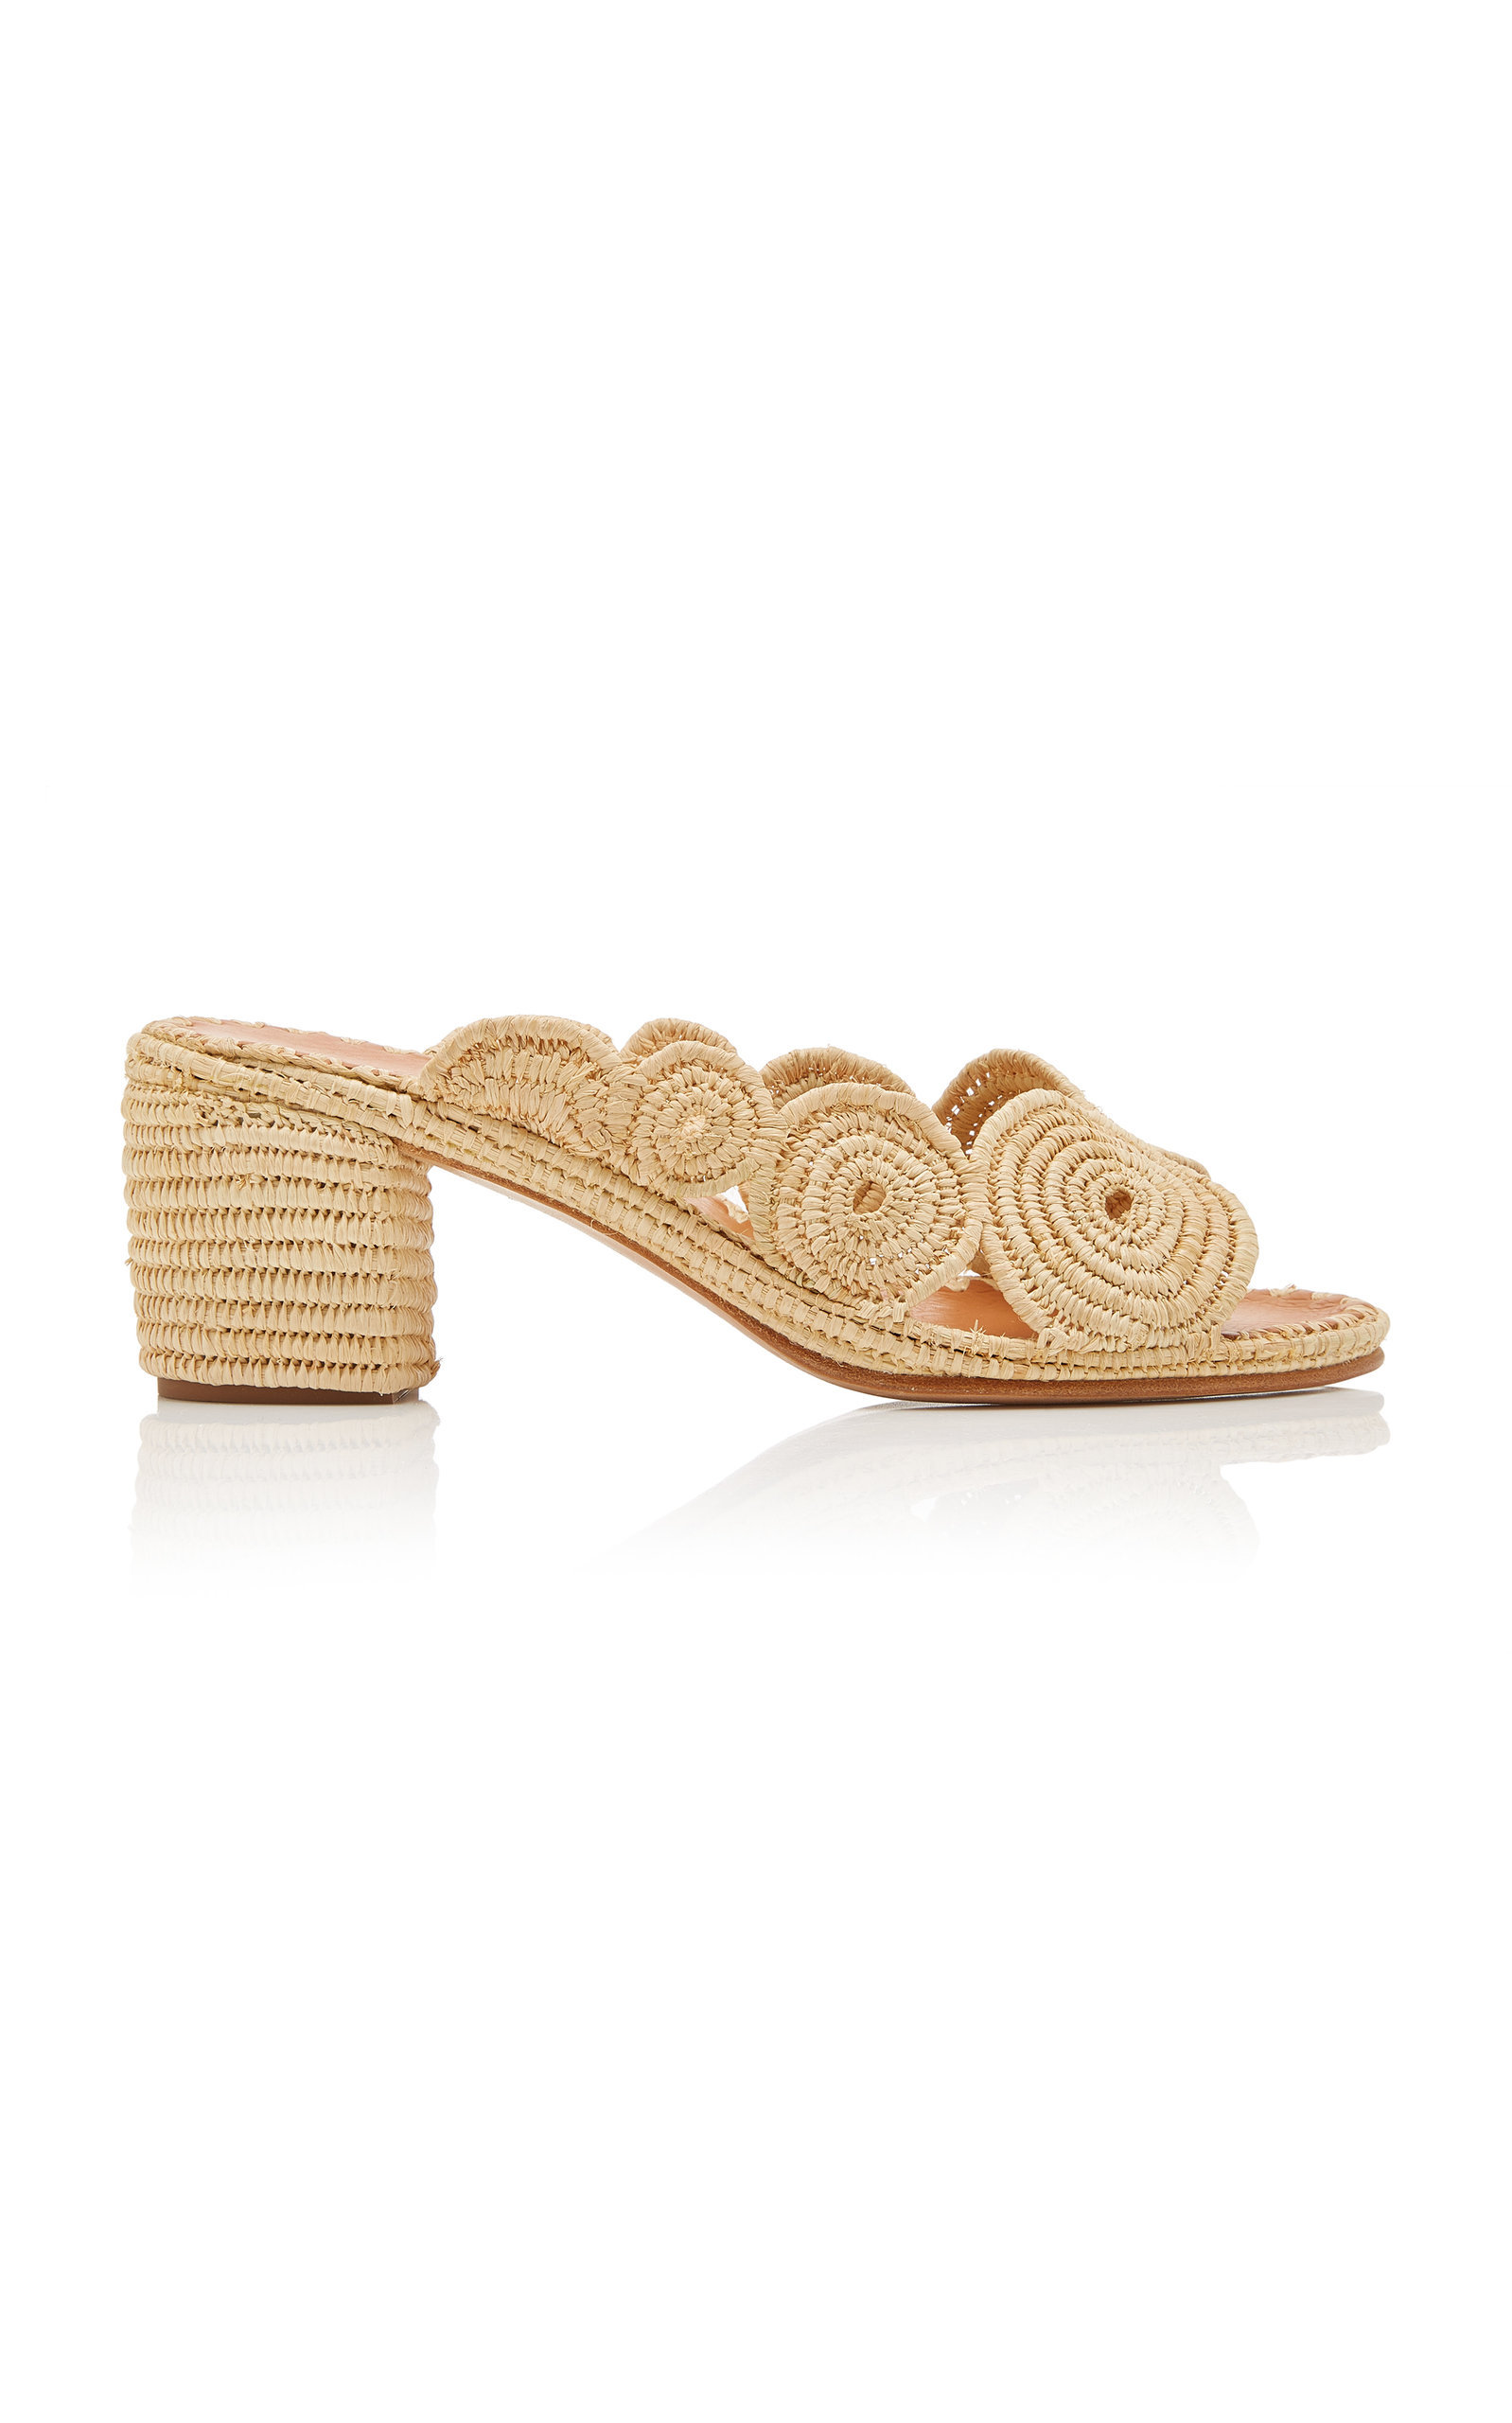 large_carrie-forbes-neutral-ayoub-raffia-mules.jpg